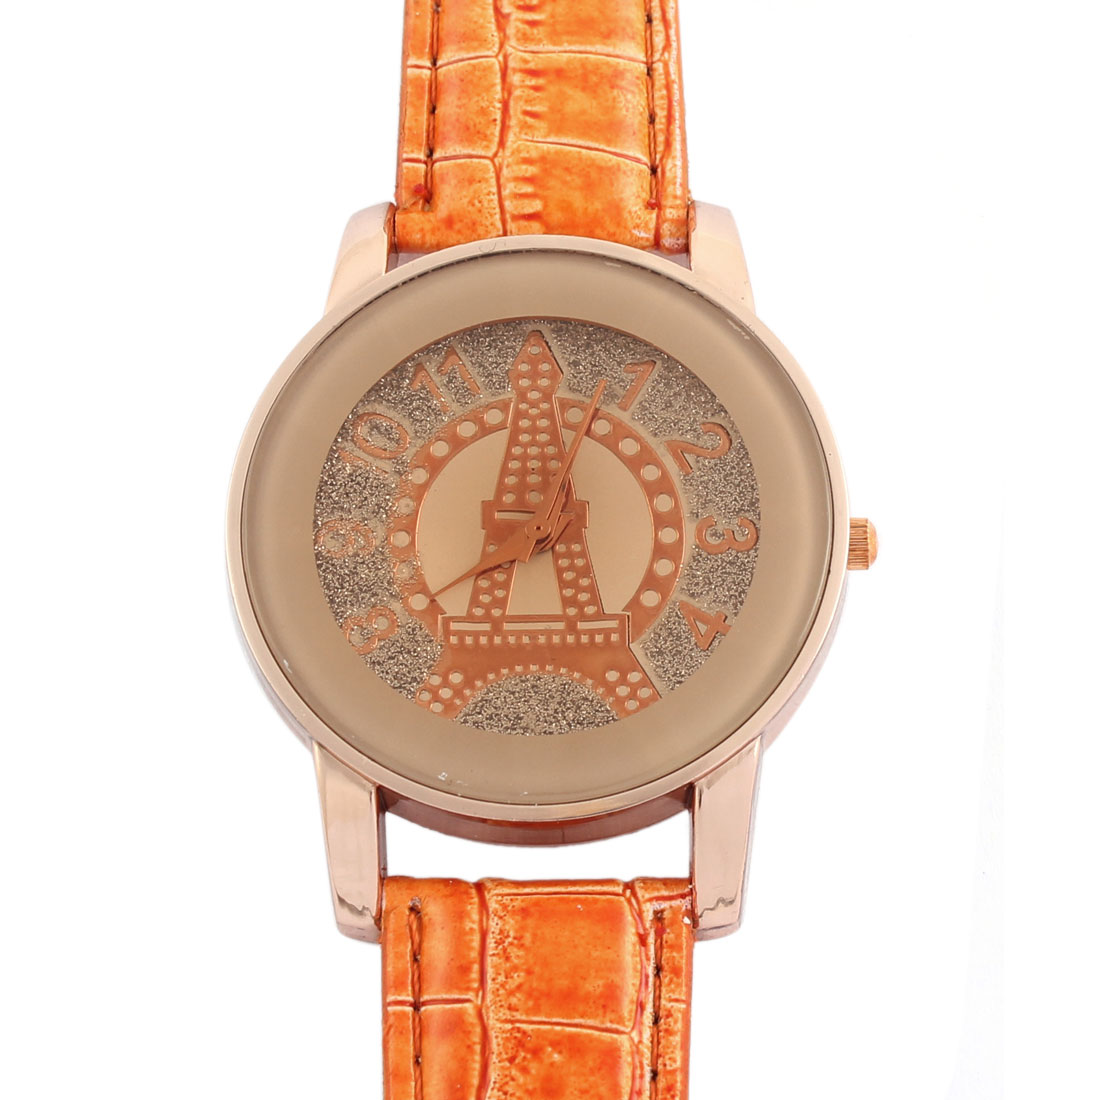 Faux Leather Band Glittery Powder Pattern Casual Analog Quartz Wrist Watch for Lady